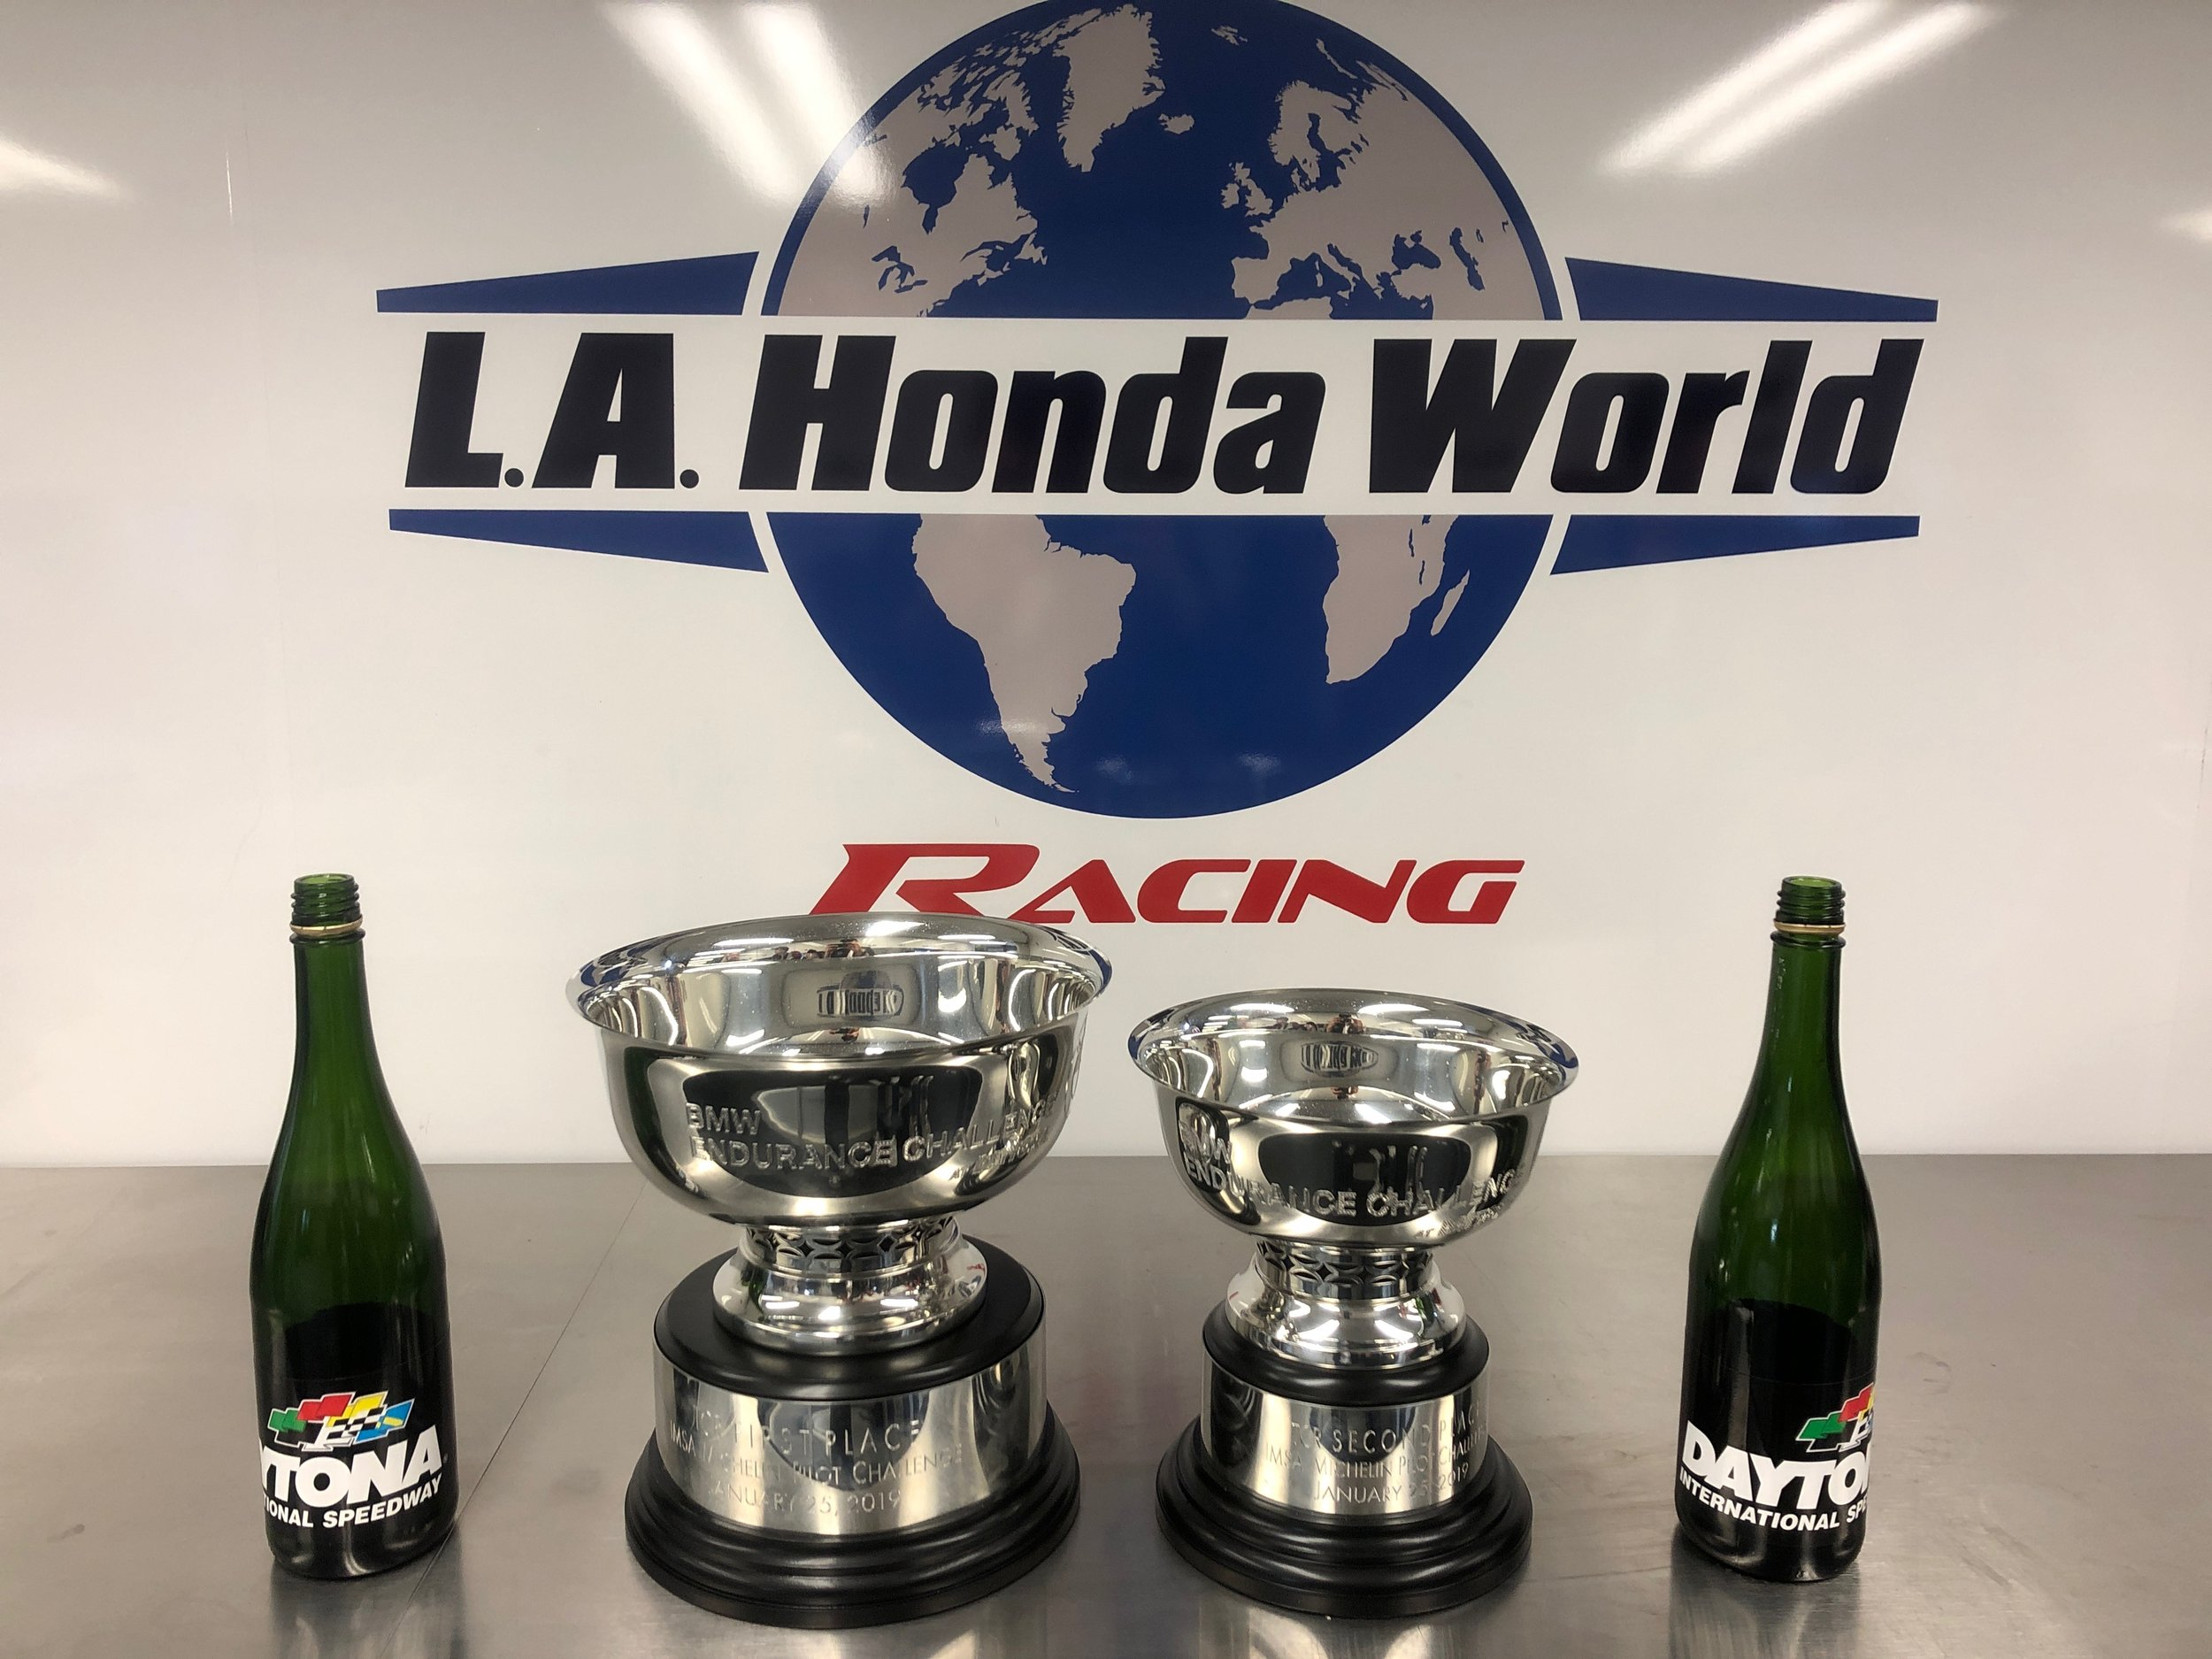 L.A. Honda World finishes with 1st and 2nd place trophies at the Michelin Pilot Challenge season's first race